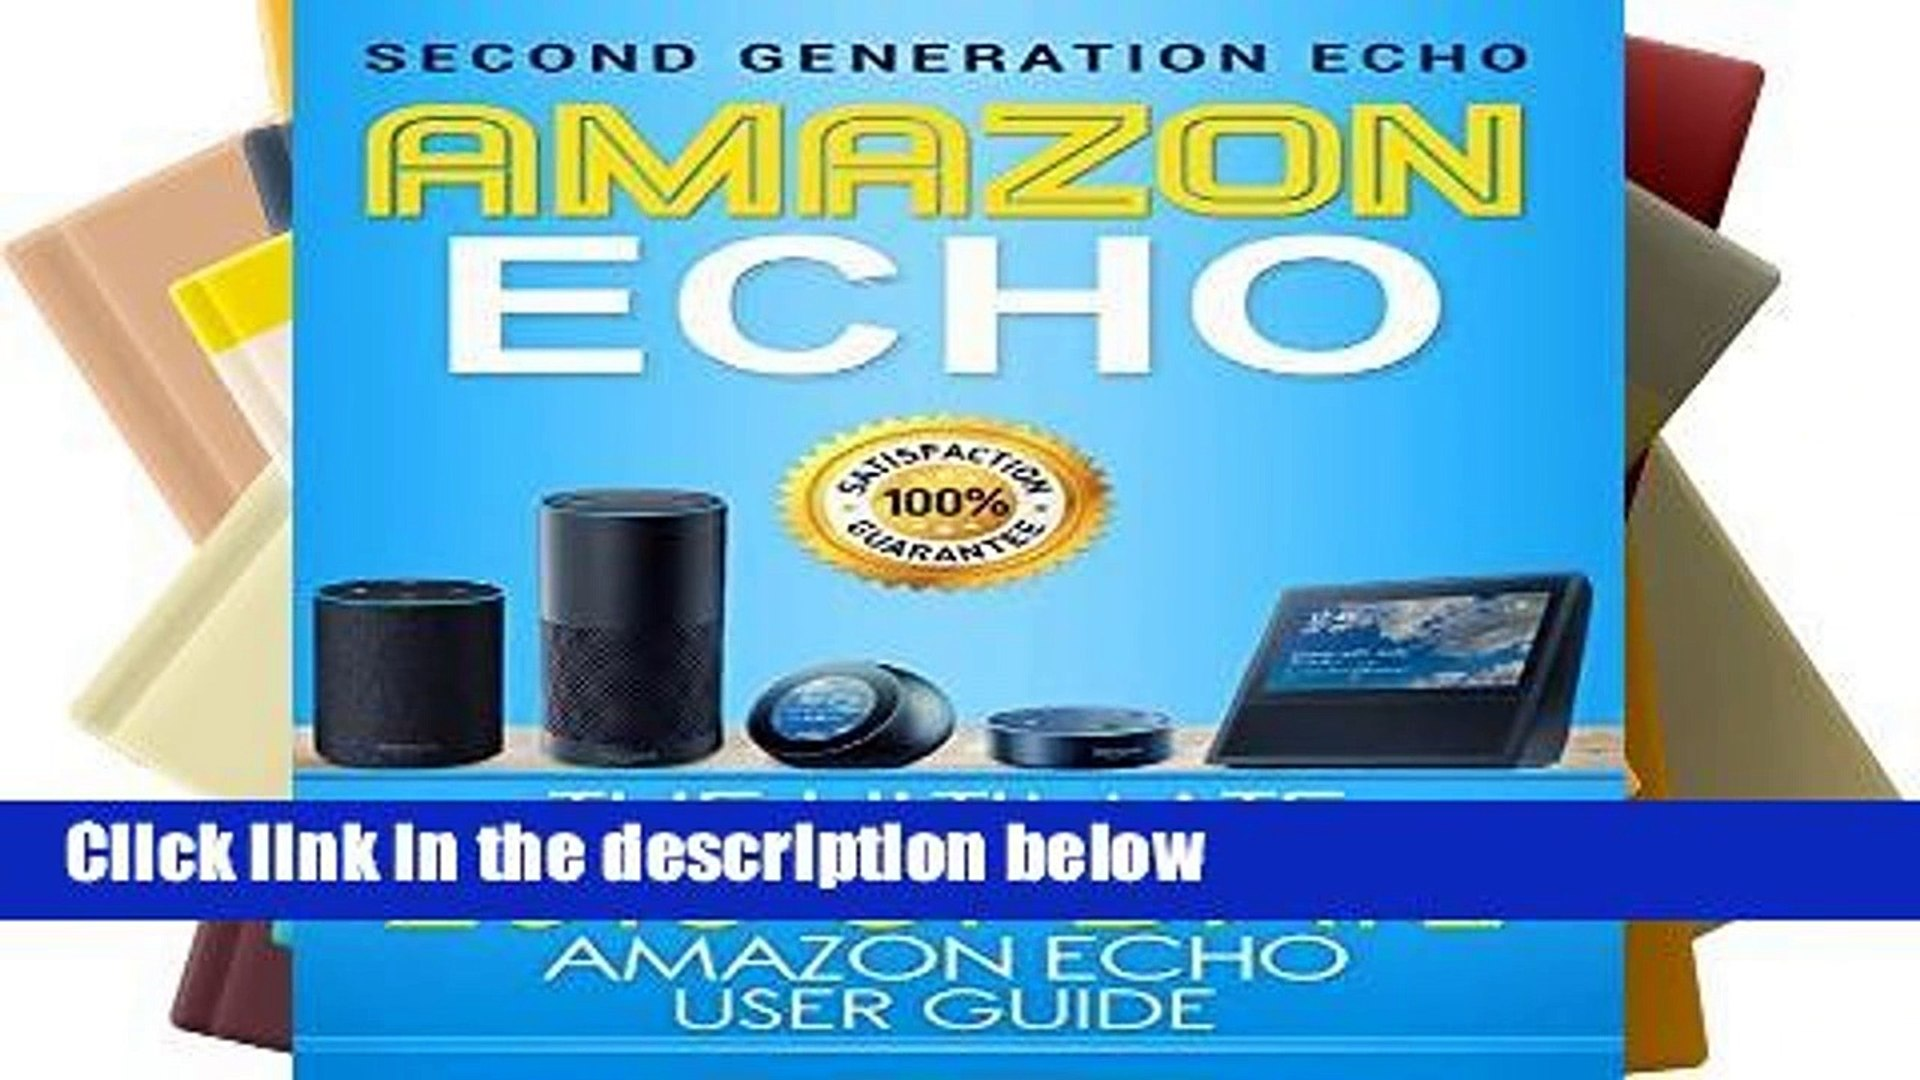 [P.D.F] Amazon Echo: The Ultimate 2017 Updated Amazon Echo User Guide (Amazon Echo, Second